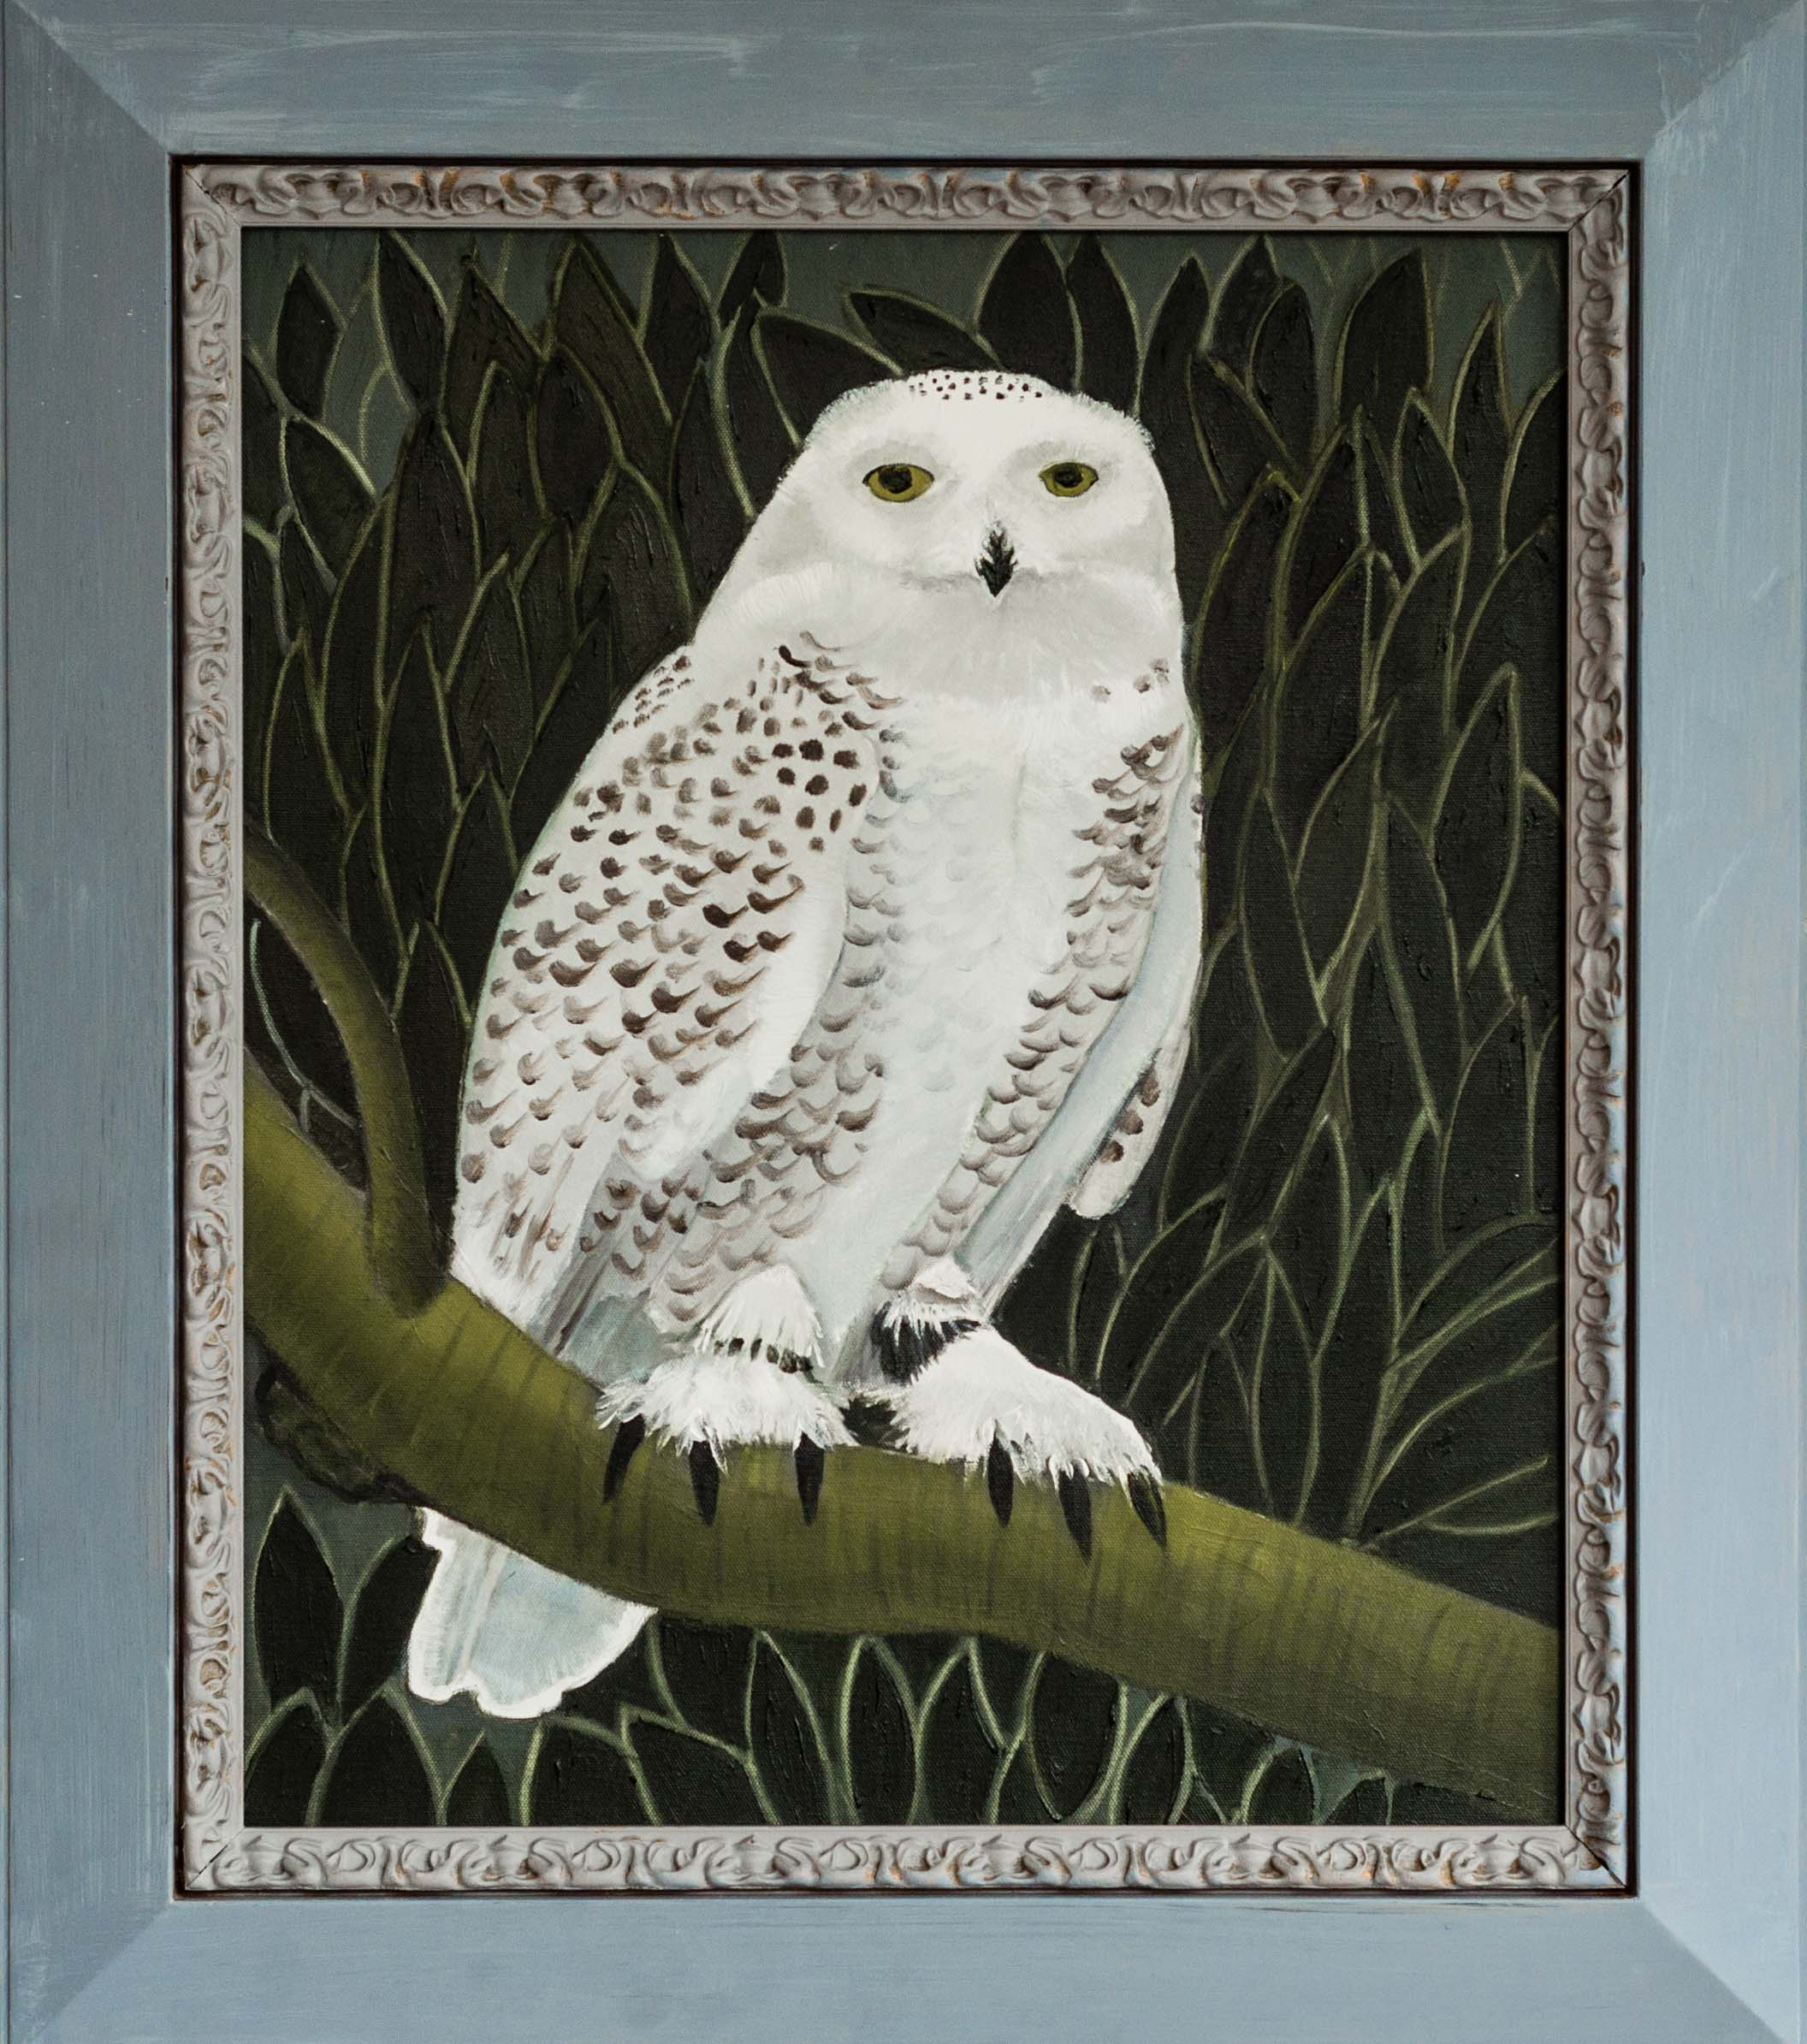 Snowy Owl - 30 3-4x26 3-4 - Oil on canvas -2015 web